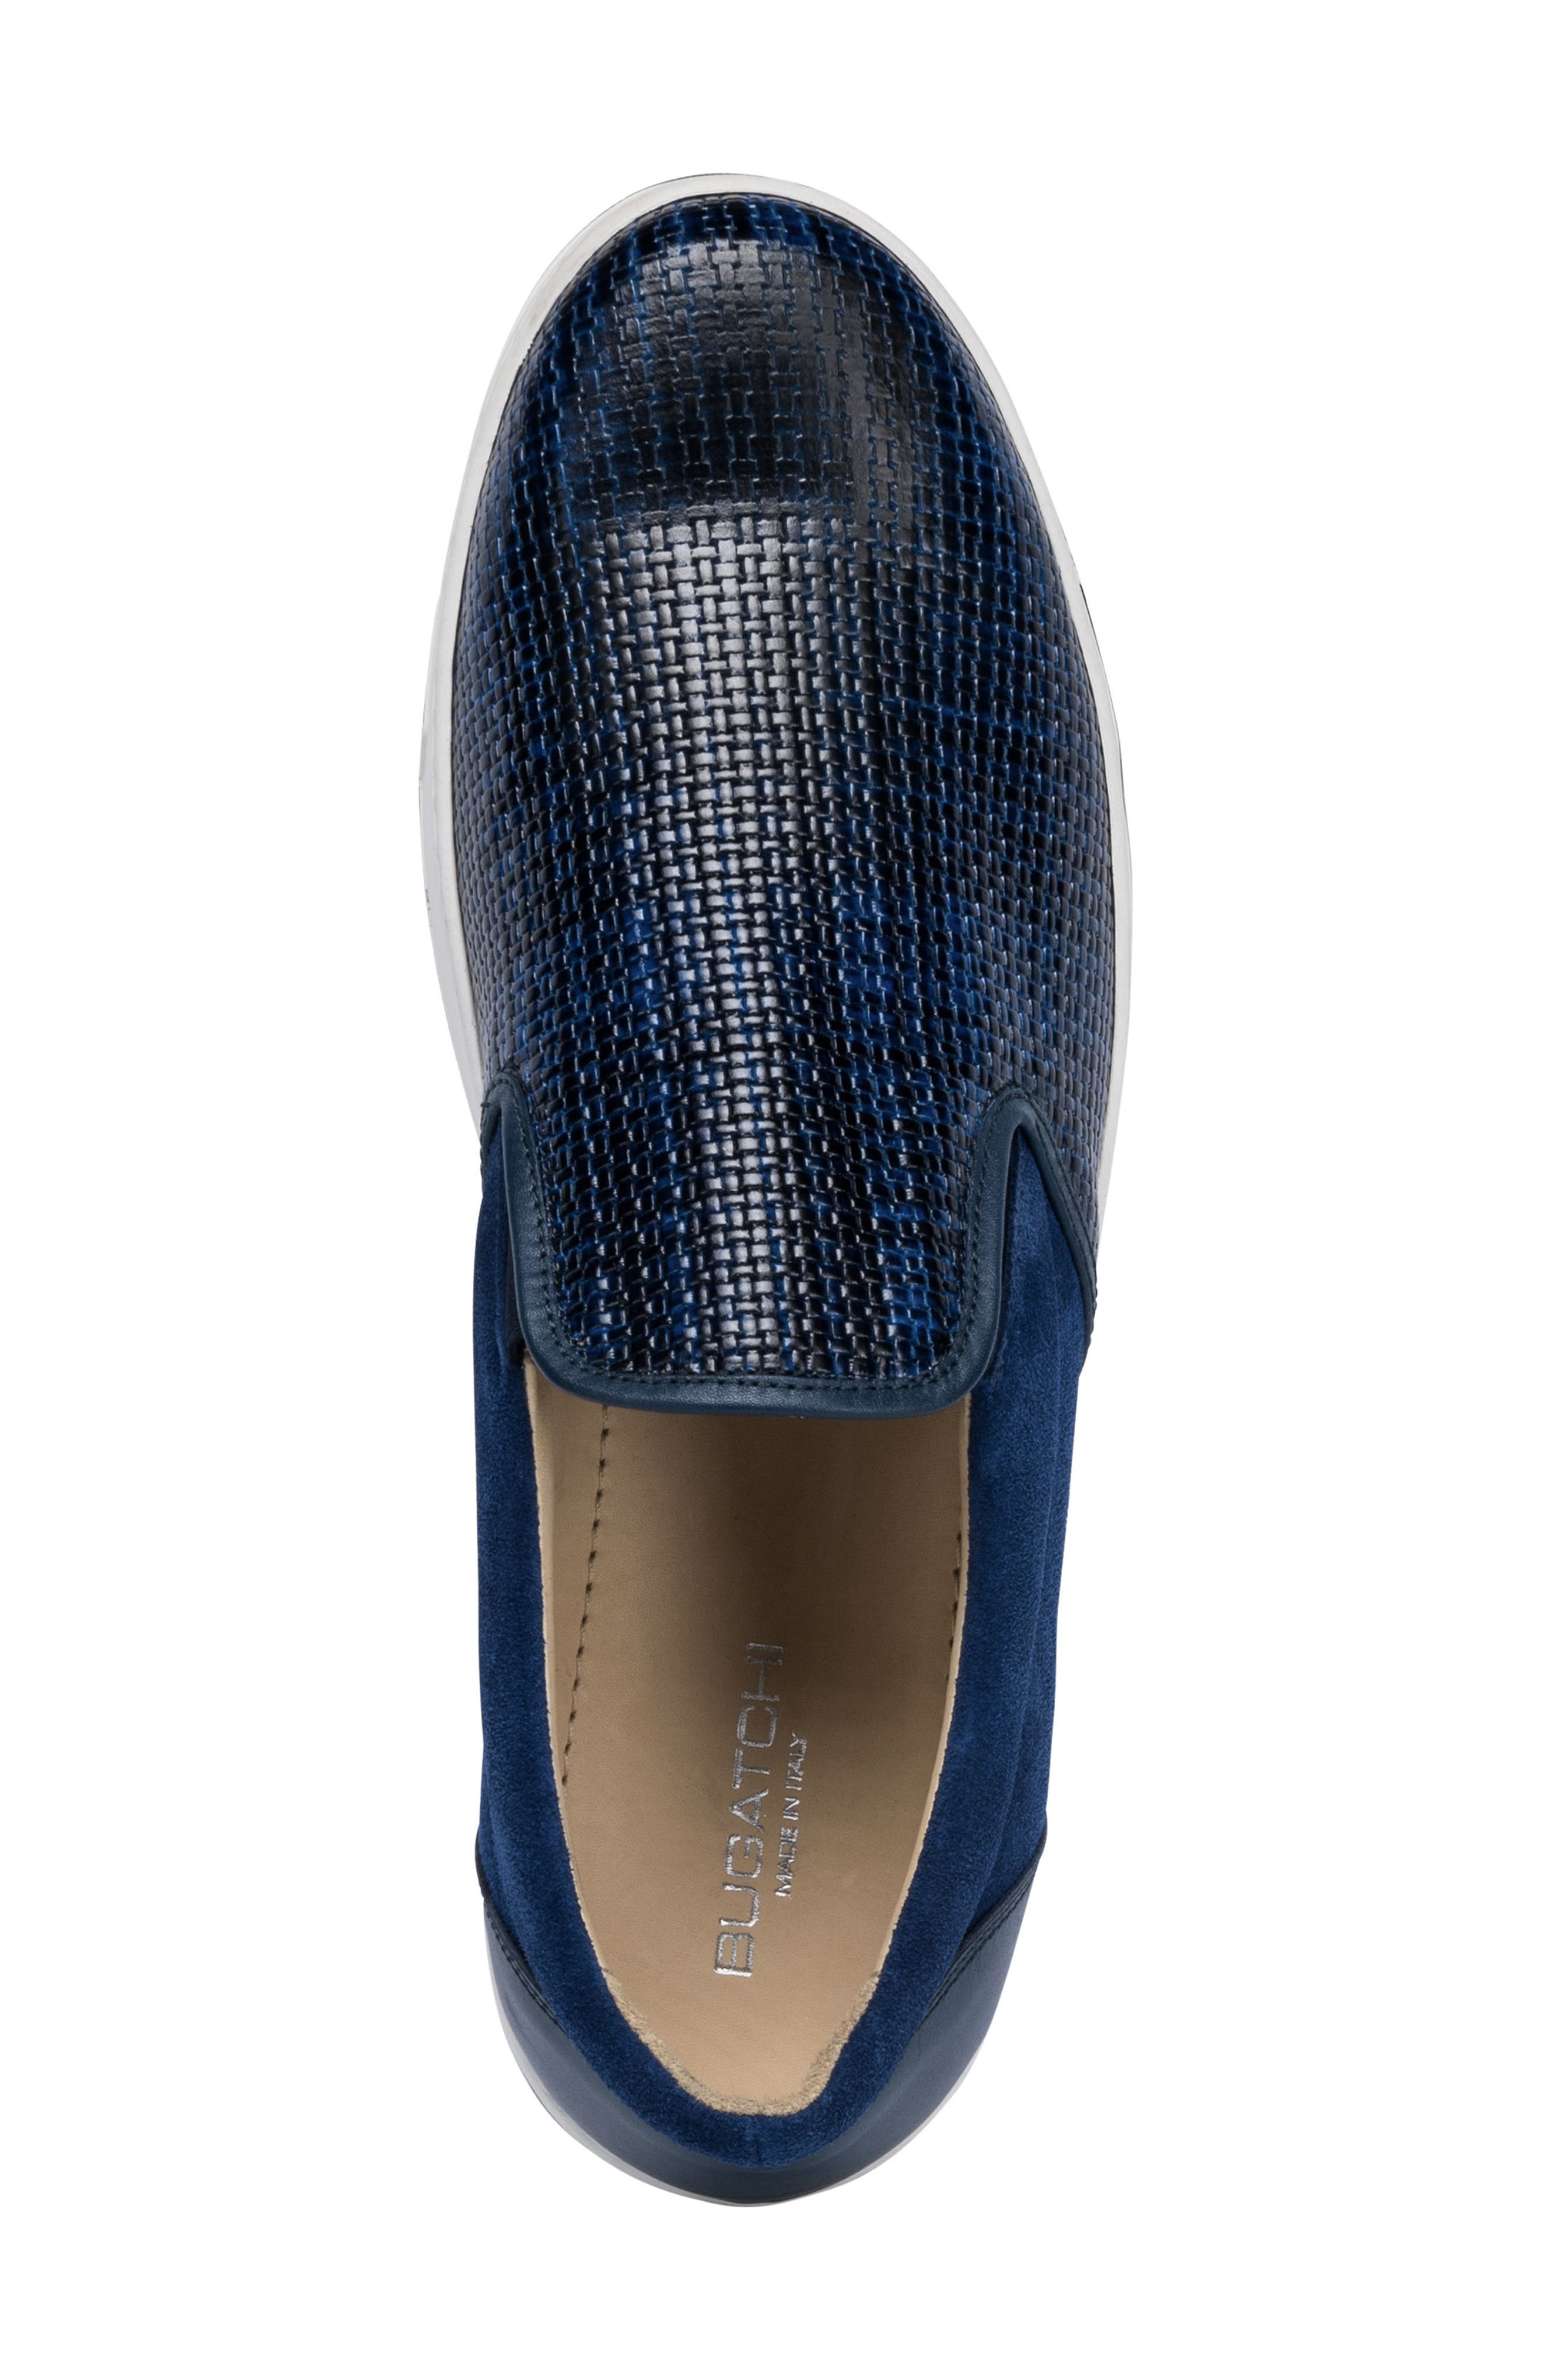 Cinque Terre Woven Slip-On Sneaker,                             Alternate thumbnail 5, color,                             Blue Leather/ Suede